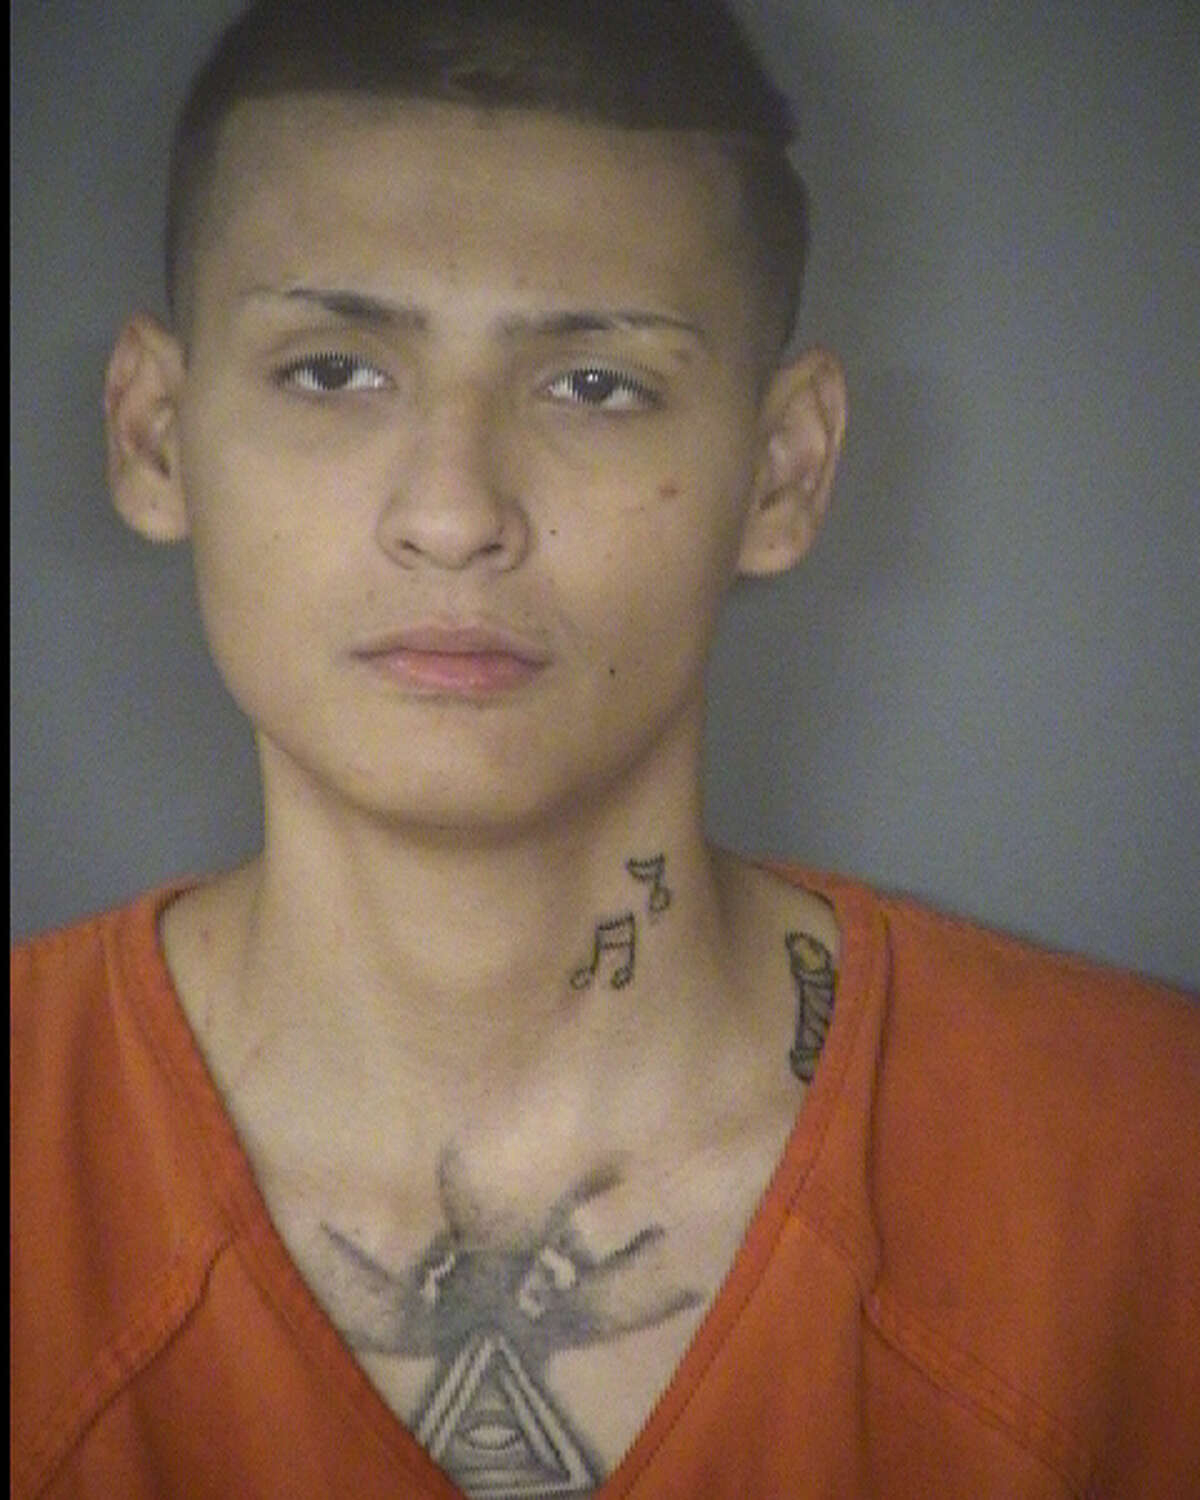 George Penalver, 23, is accused of aggravated robbery.